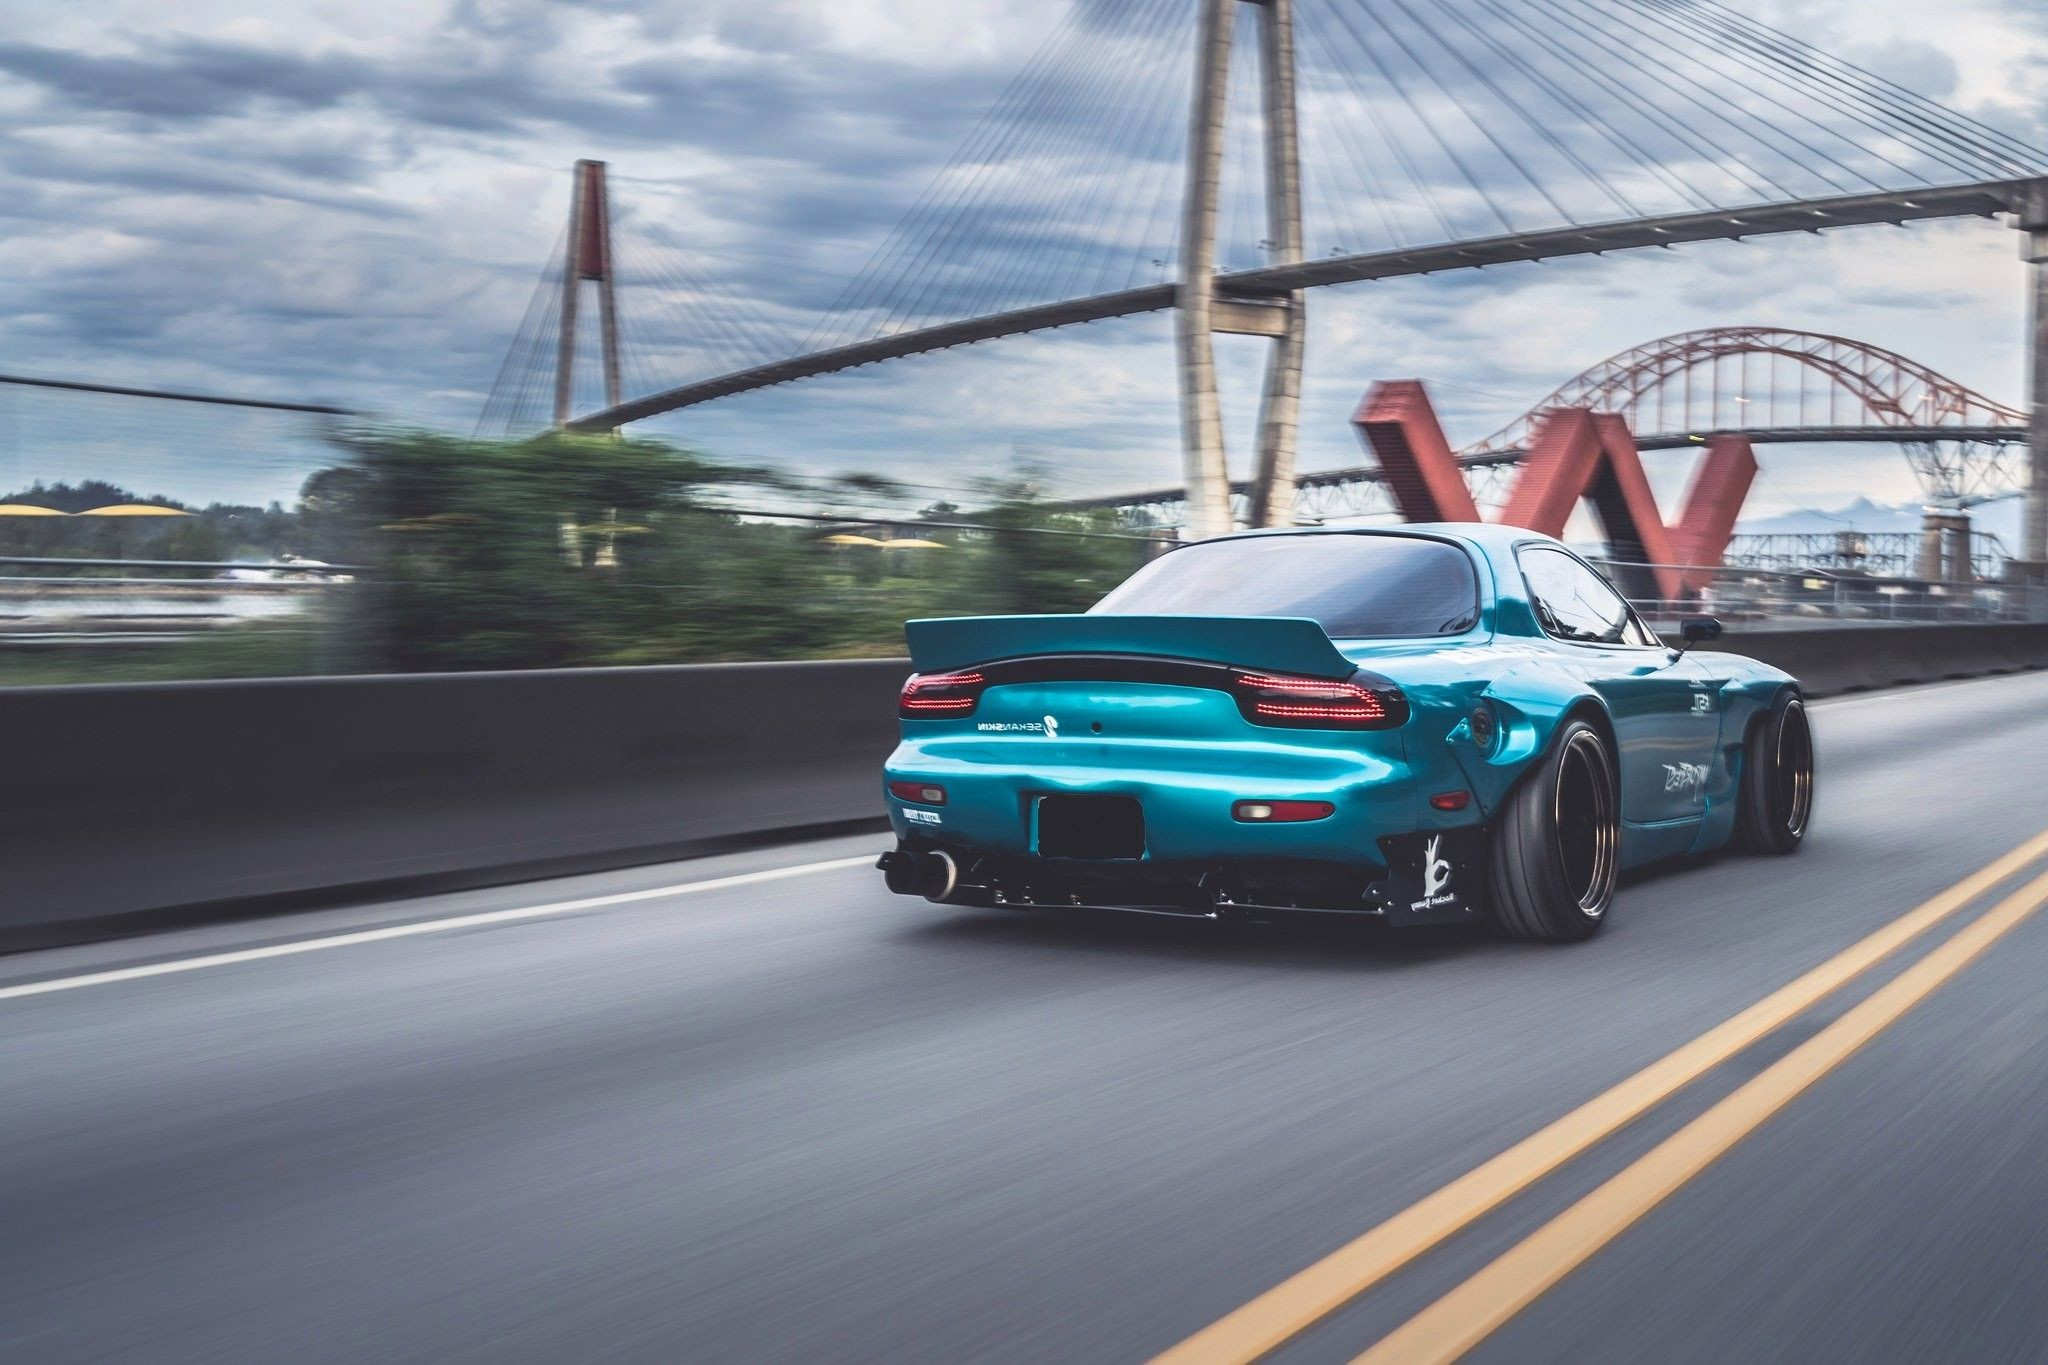 Res: 2048x1365, Sports Car Mazda Rx-7 Blue Cars Bridge Rocket Bunny